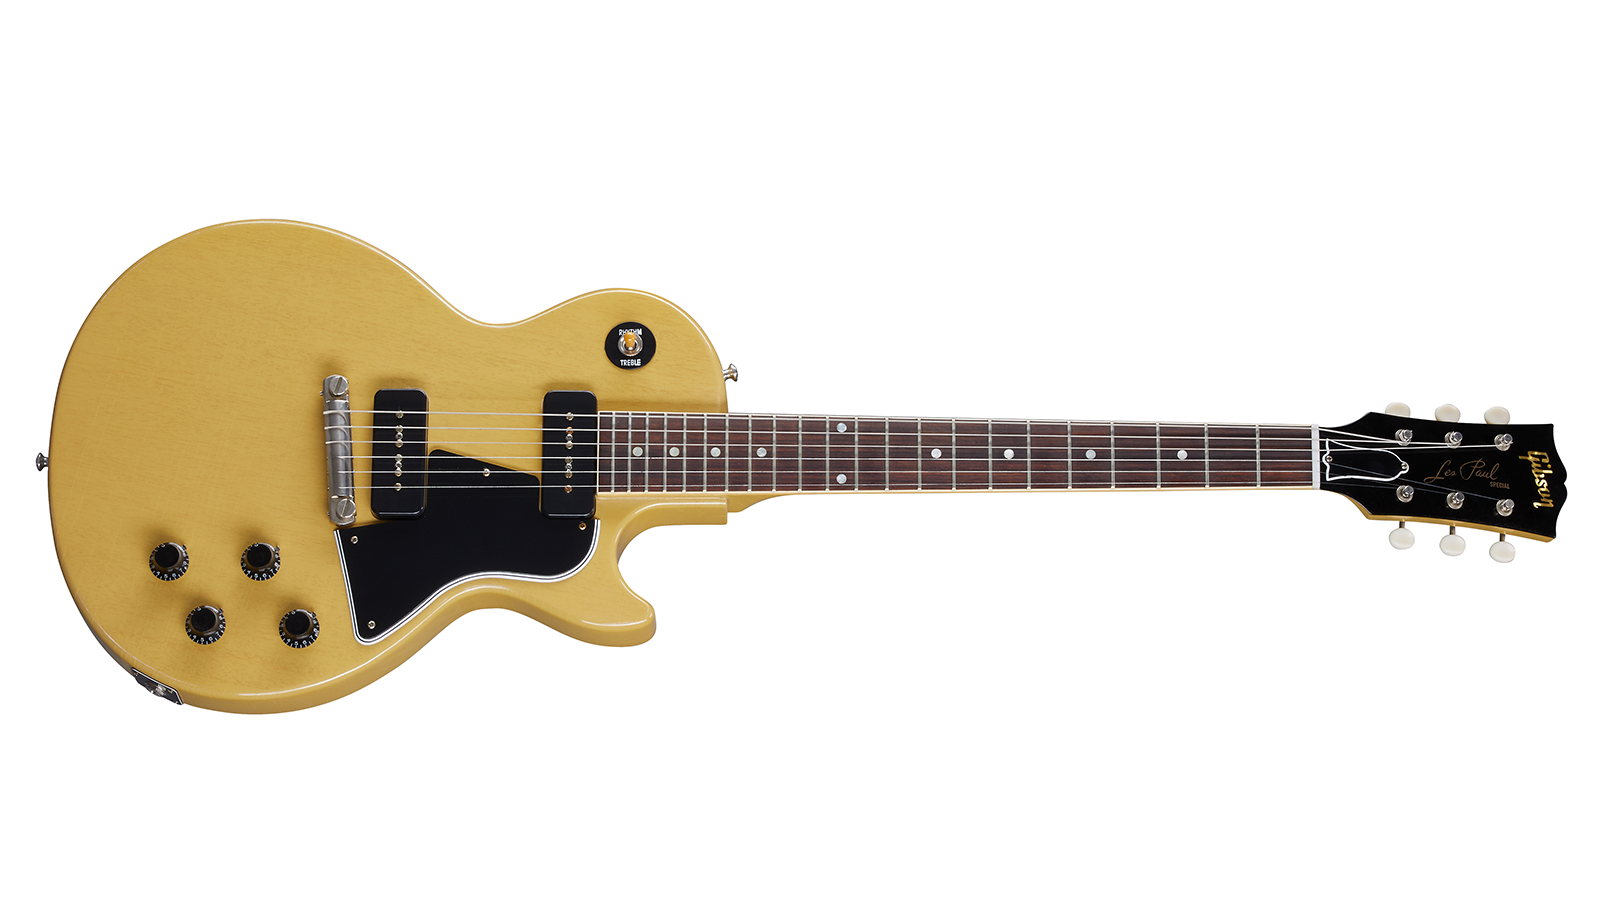 1957 Les Paul Special Single Cut TV Yellow Ultra Light Aged